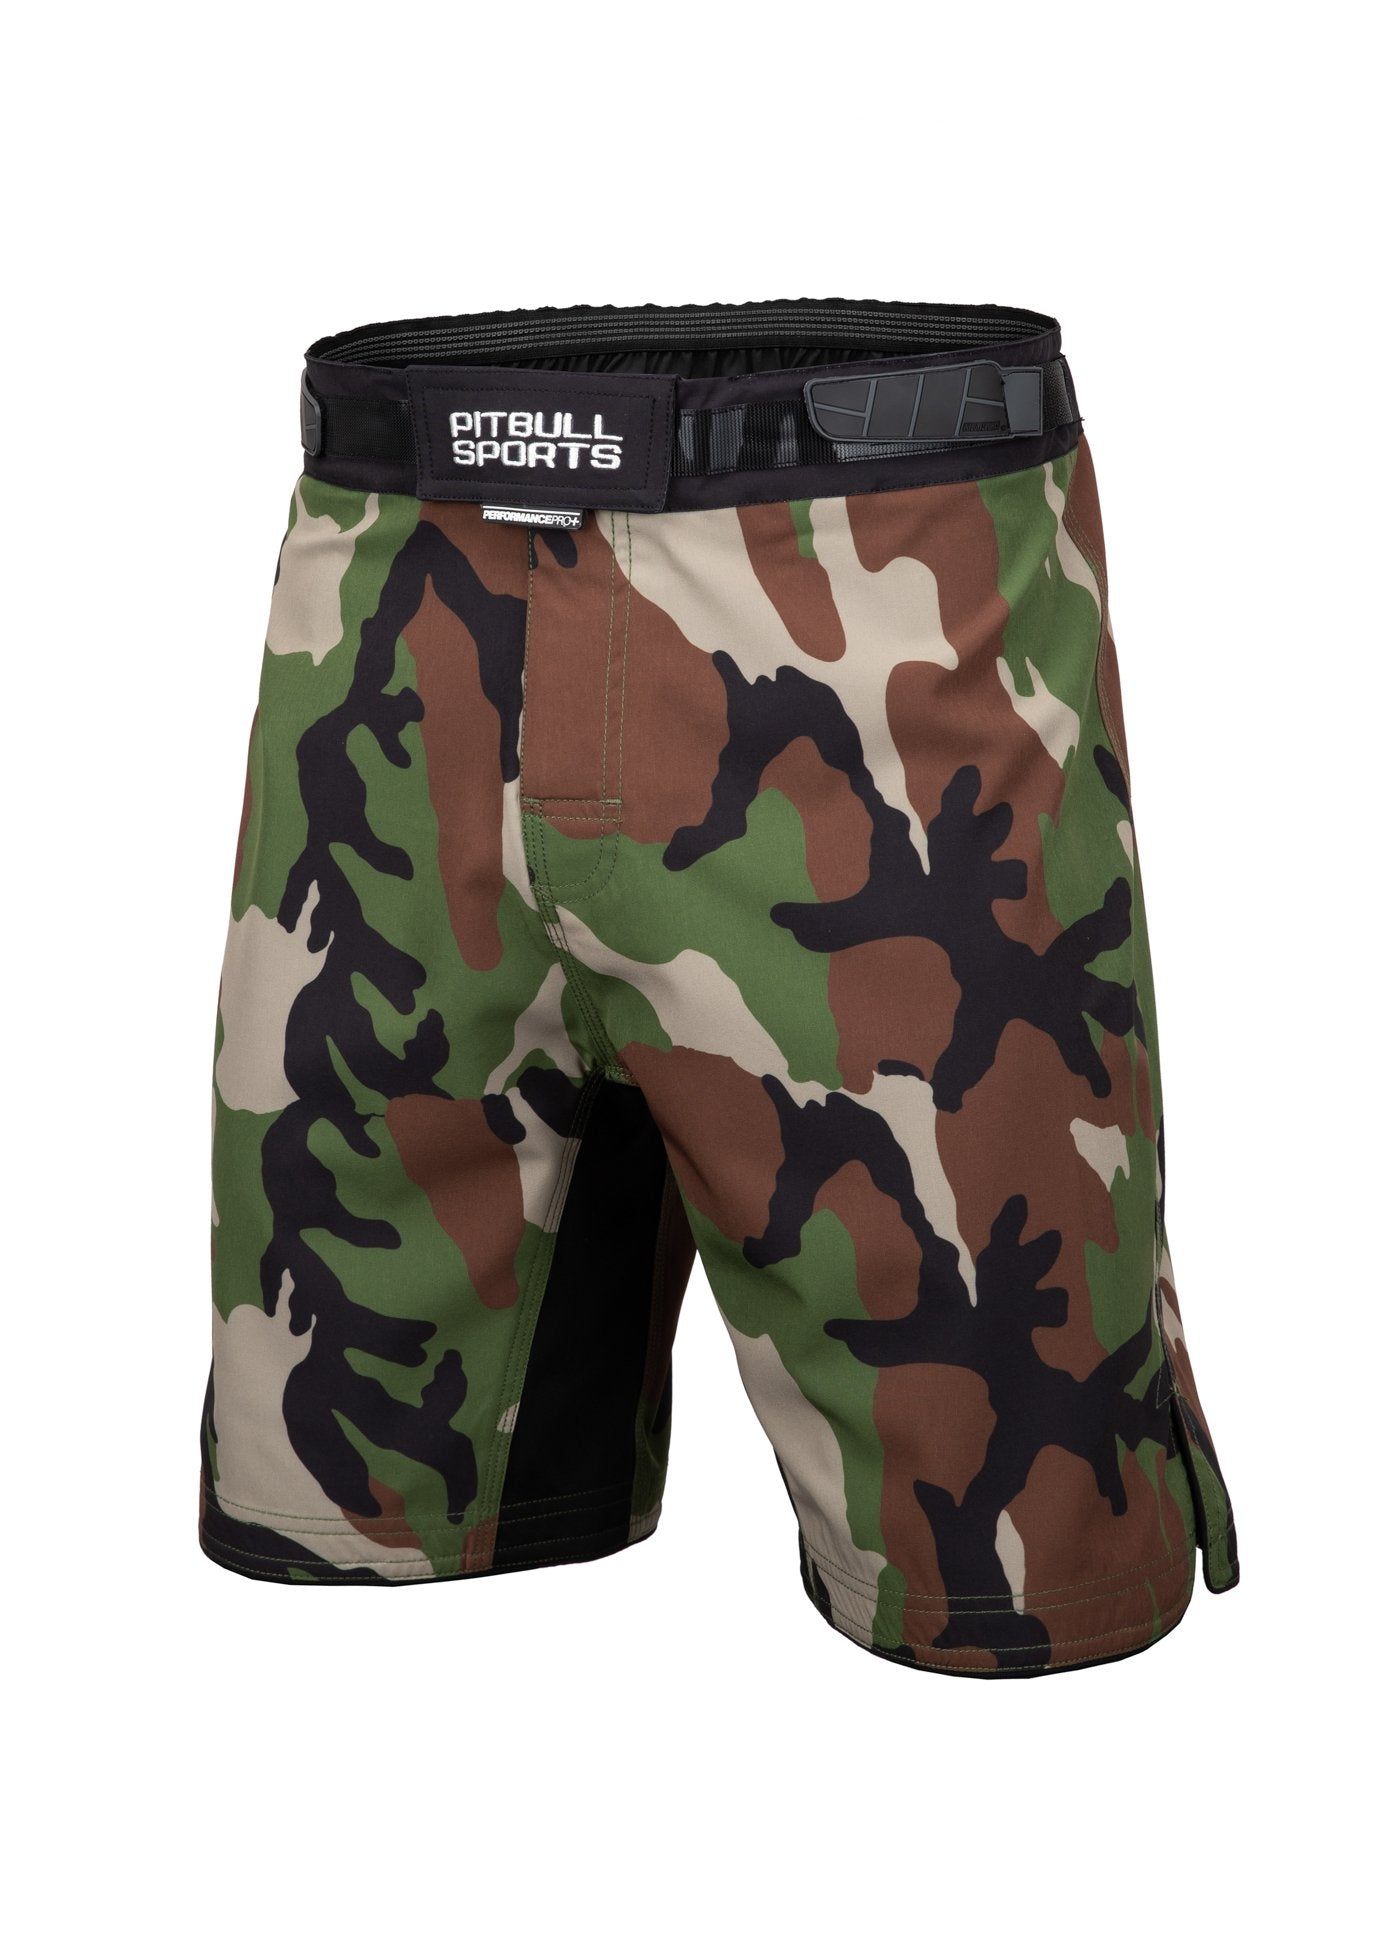 Grappling Shorts PERFORMANCE 203 Woodland Camo - Pitbull West Coast U.S.A.